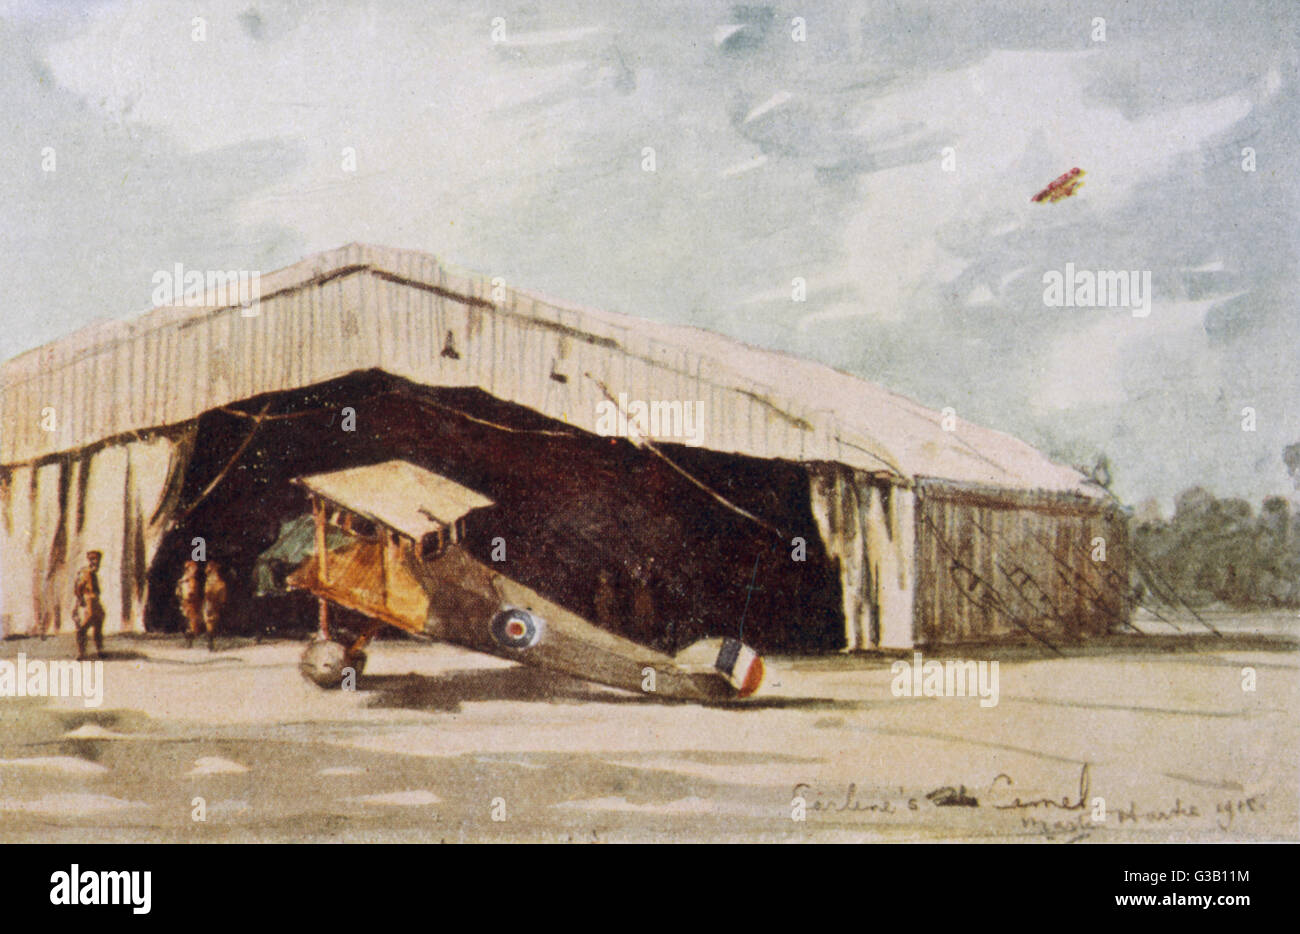 A Sopwith 'Camel' grounded at  Vicenza aerodrome         Date: 1918 - Stock Image